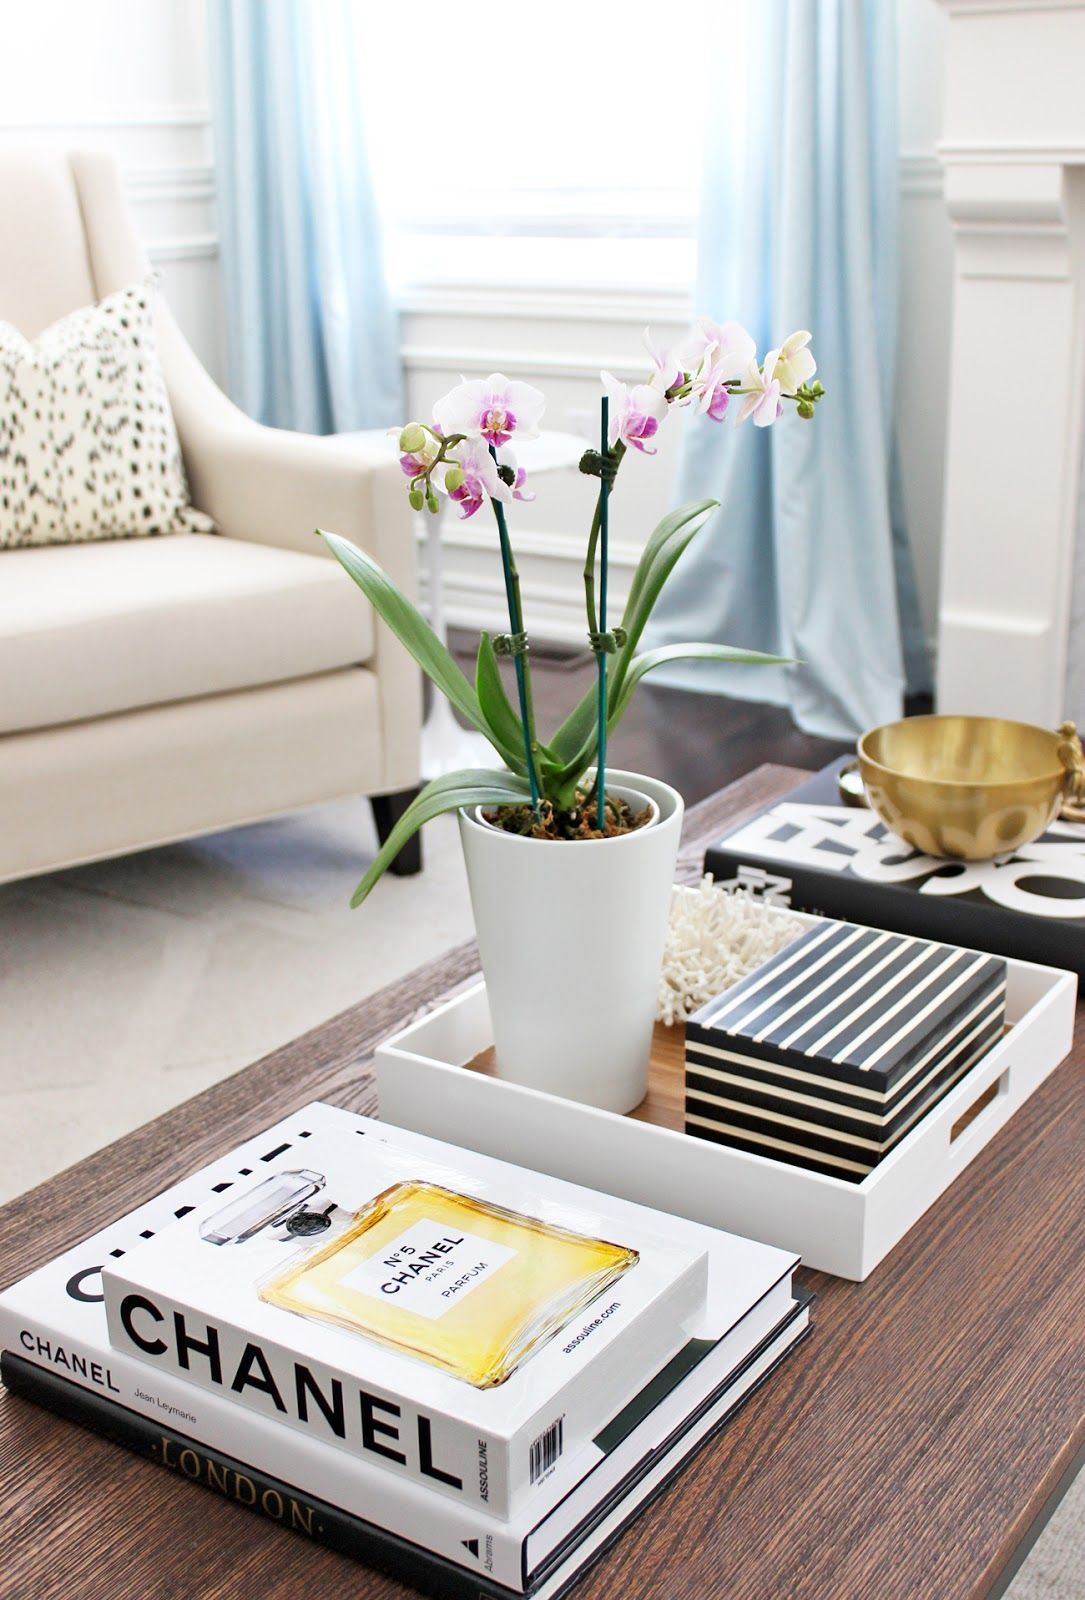 phalaenopsis orchid, chanel coffee table books | am dolce vita